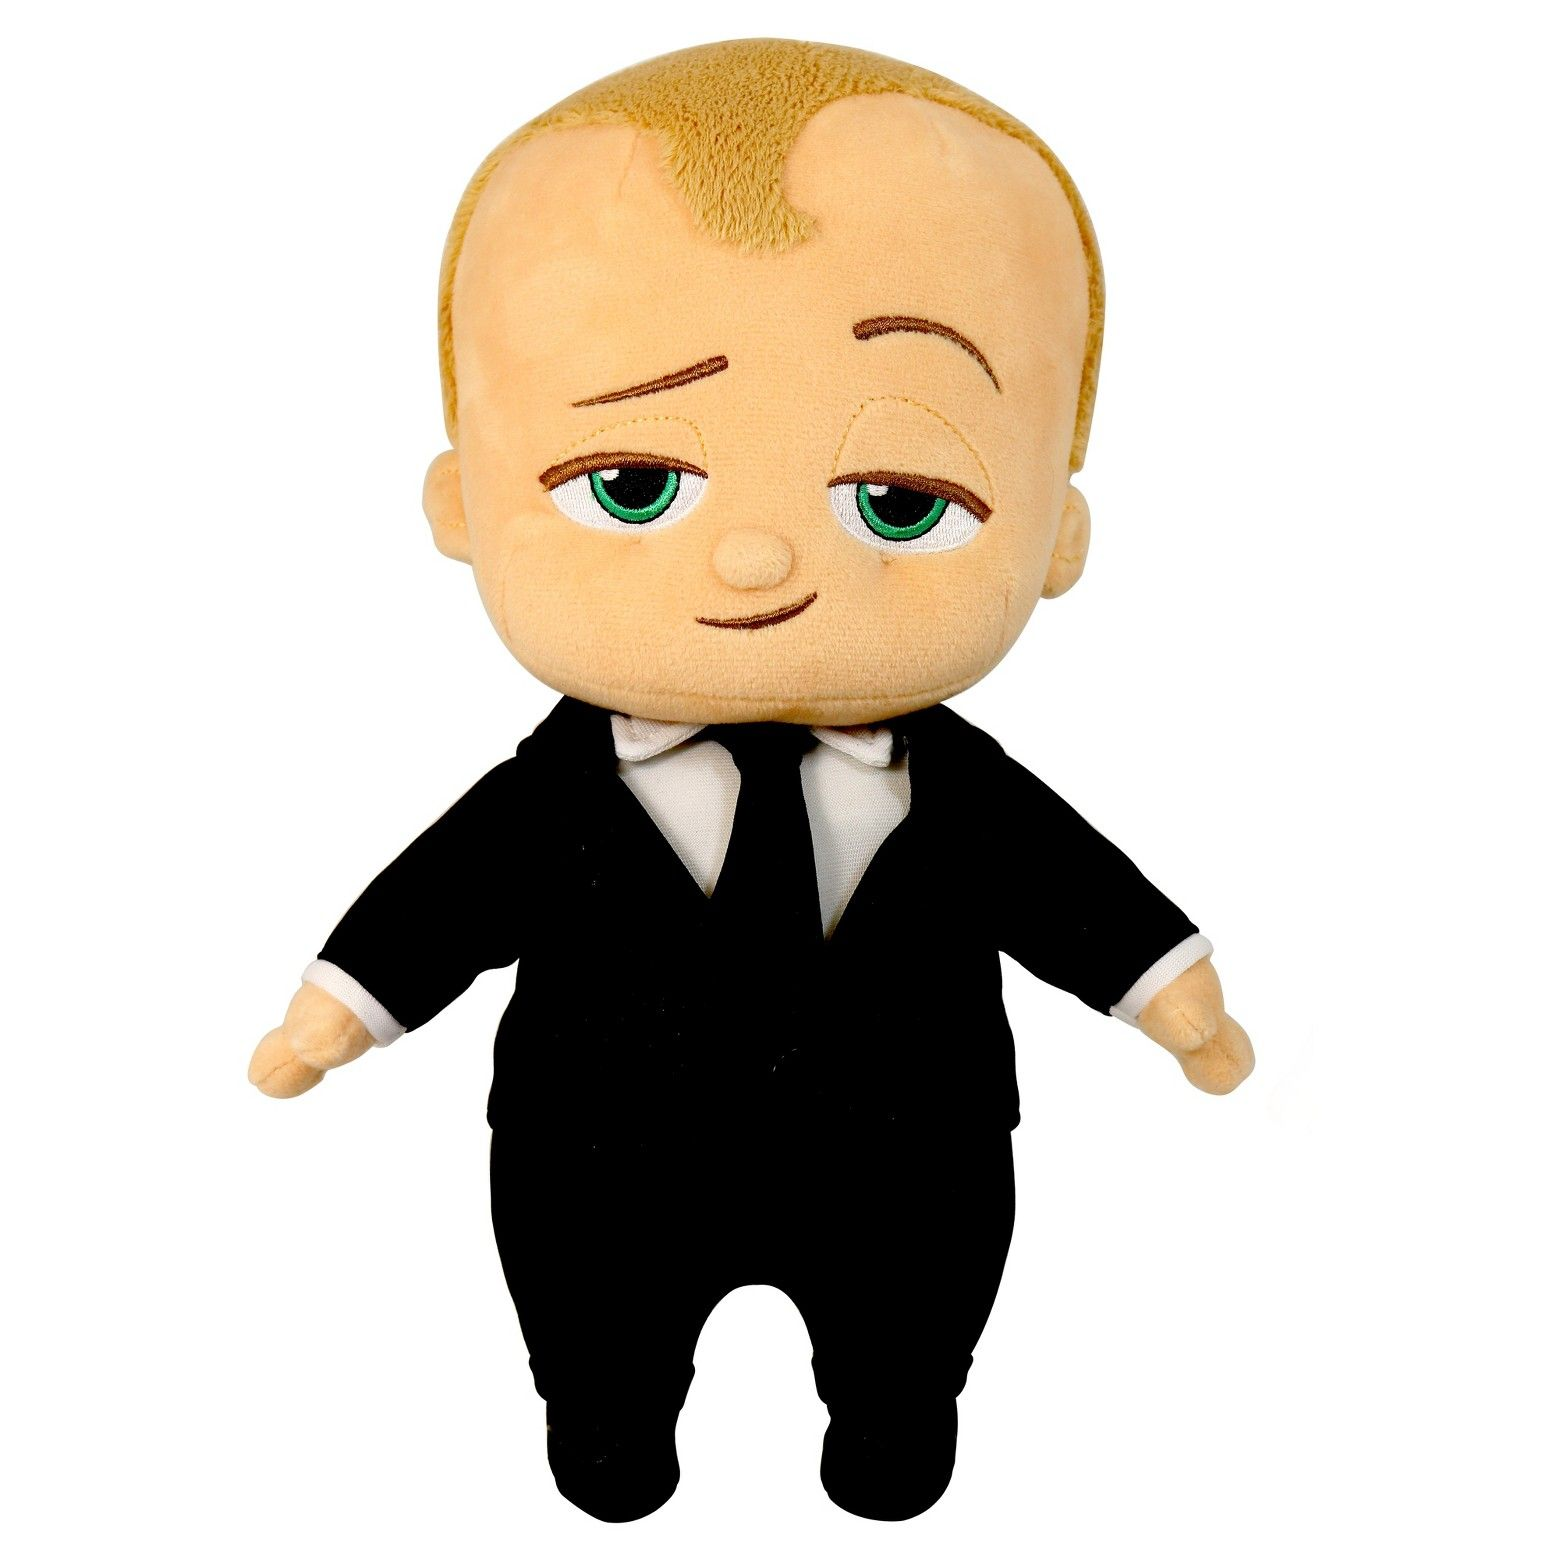 """DREAMWORKS THE BOSS BABY 12/"""" PLUSH SOFT TOYS NEW"""